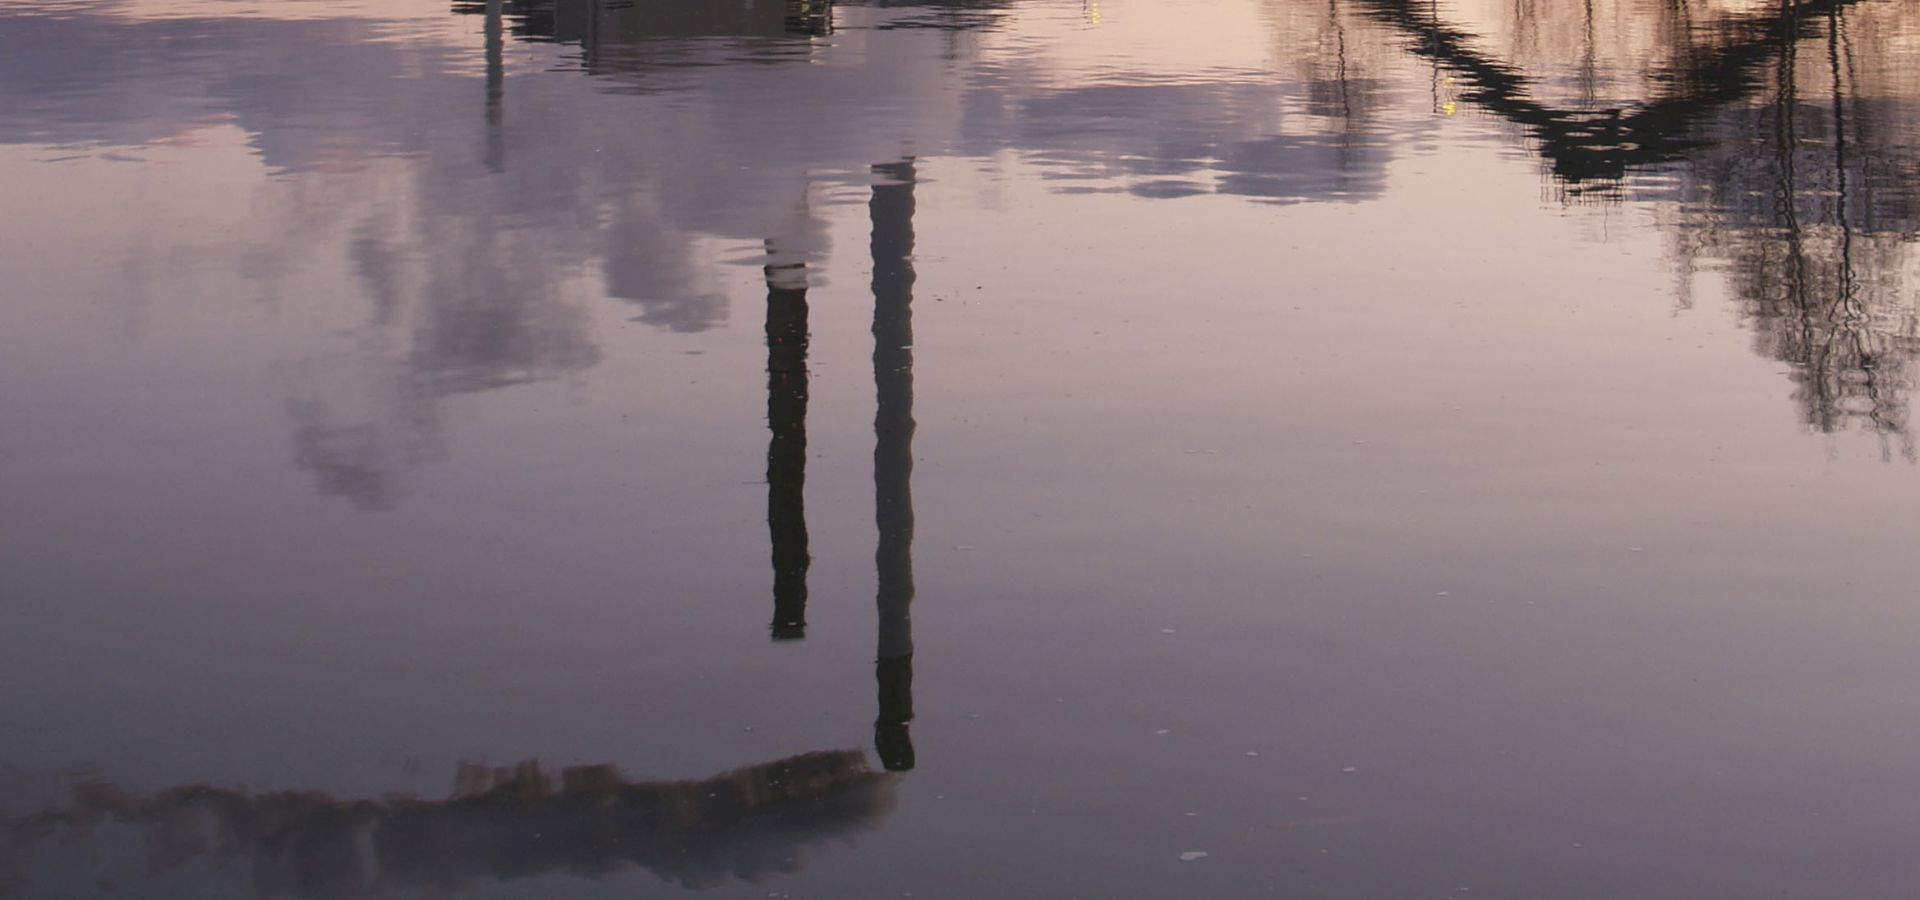 Datteln 4 smokestacks reflection underwater